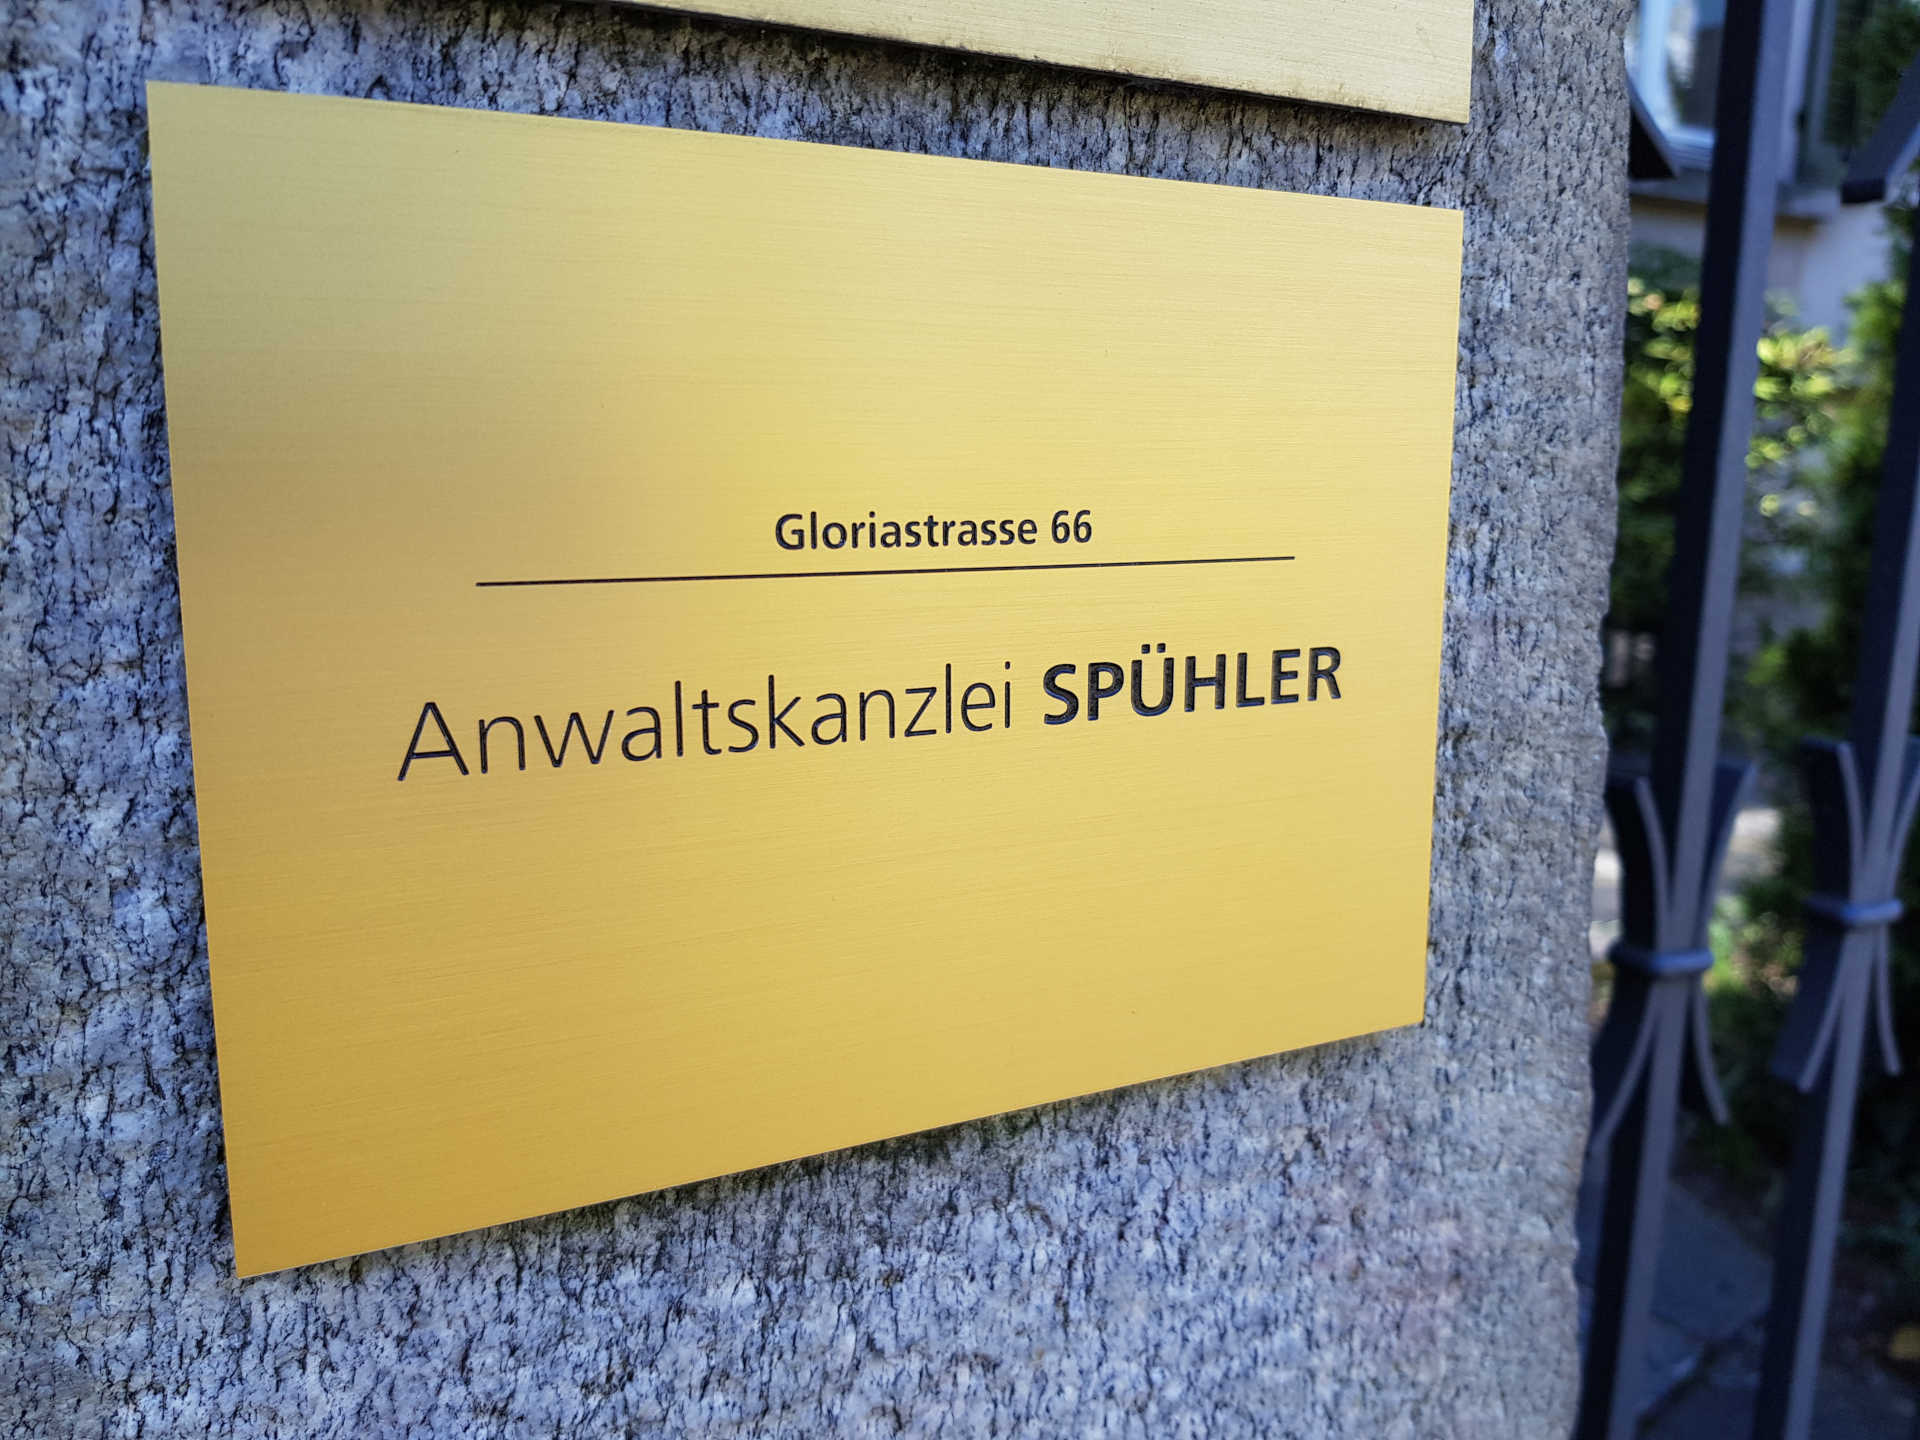 Company sign of the law firm Spühler